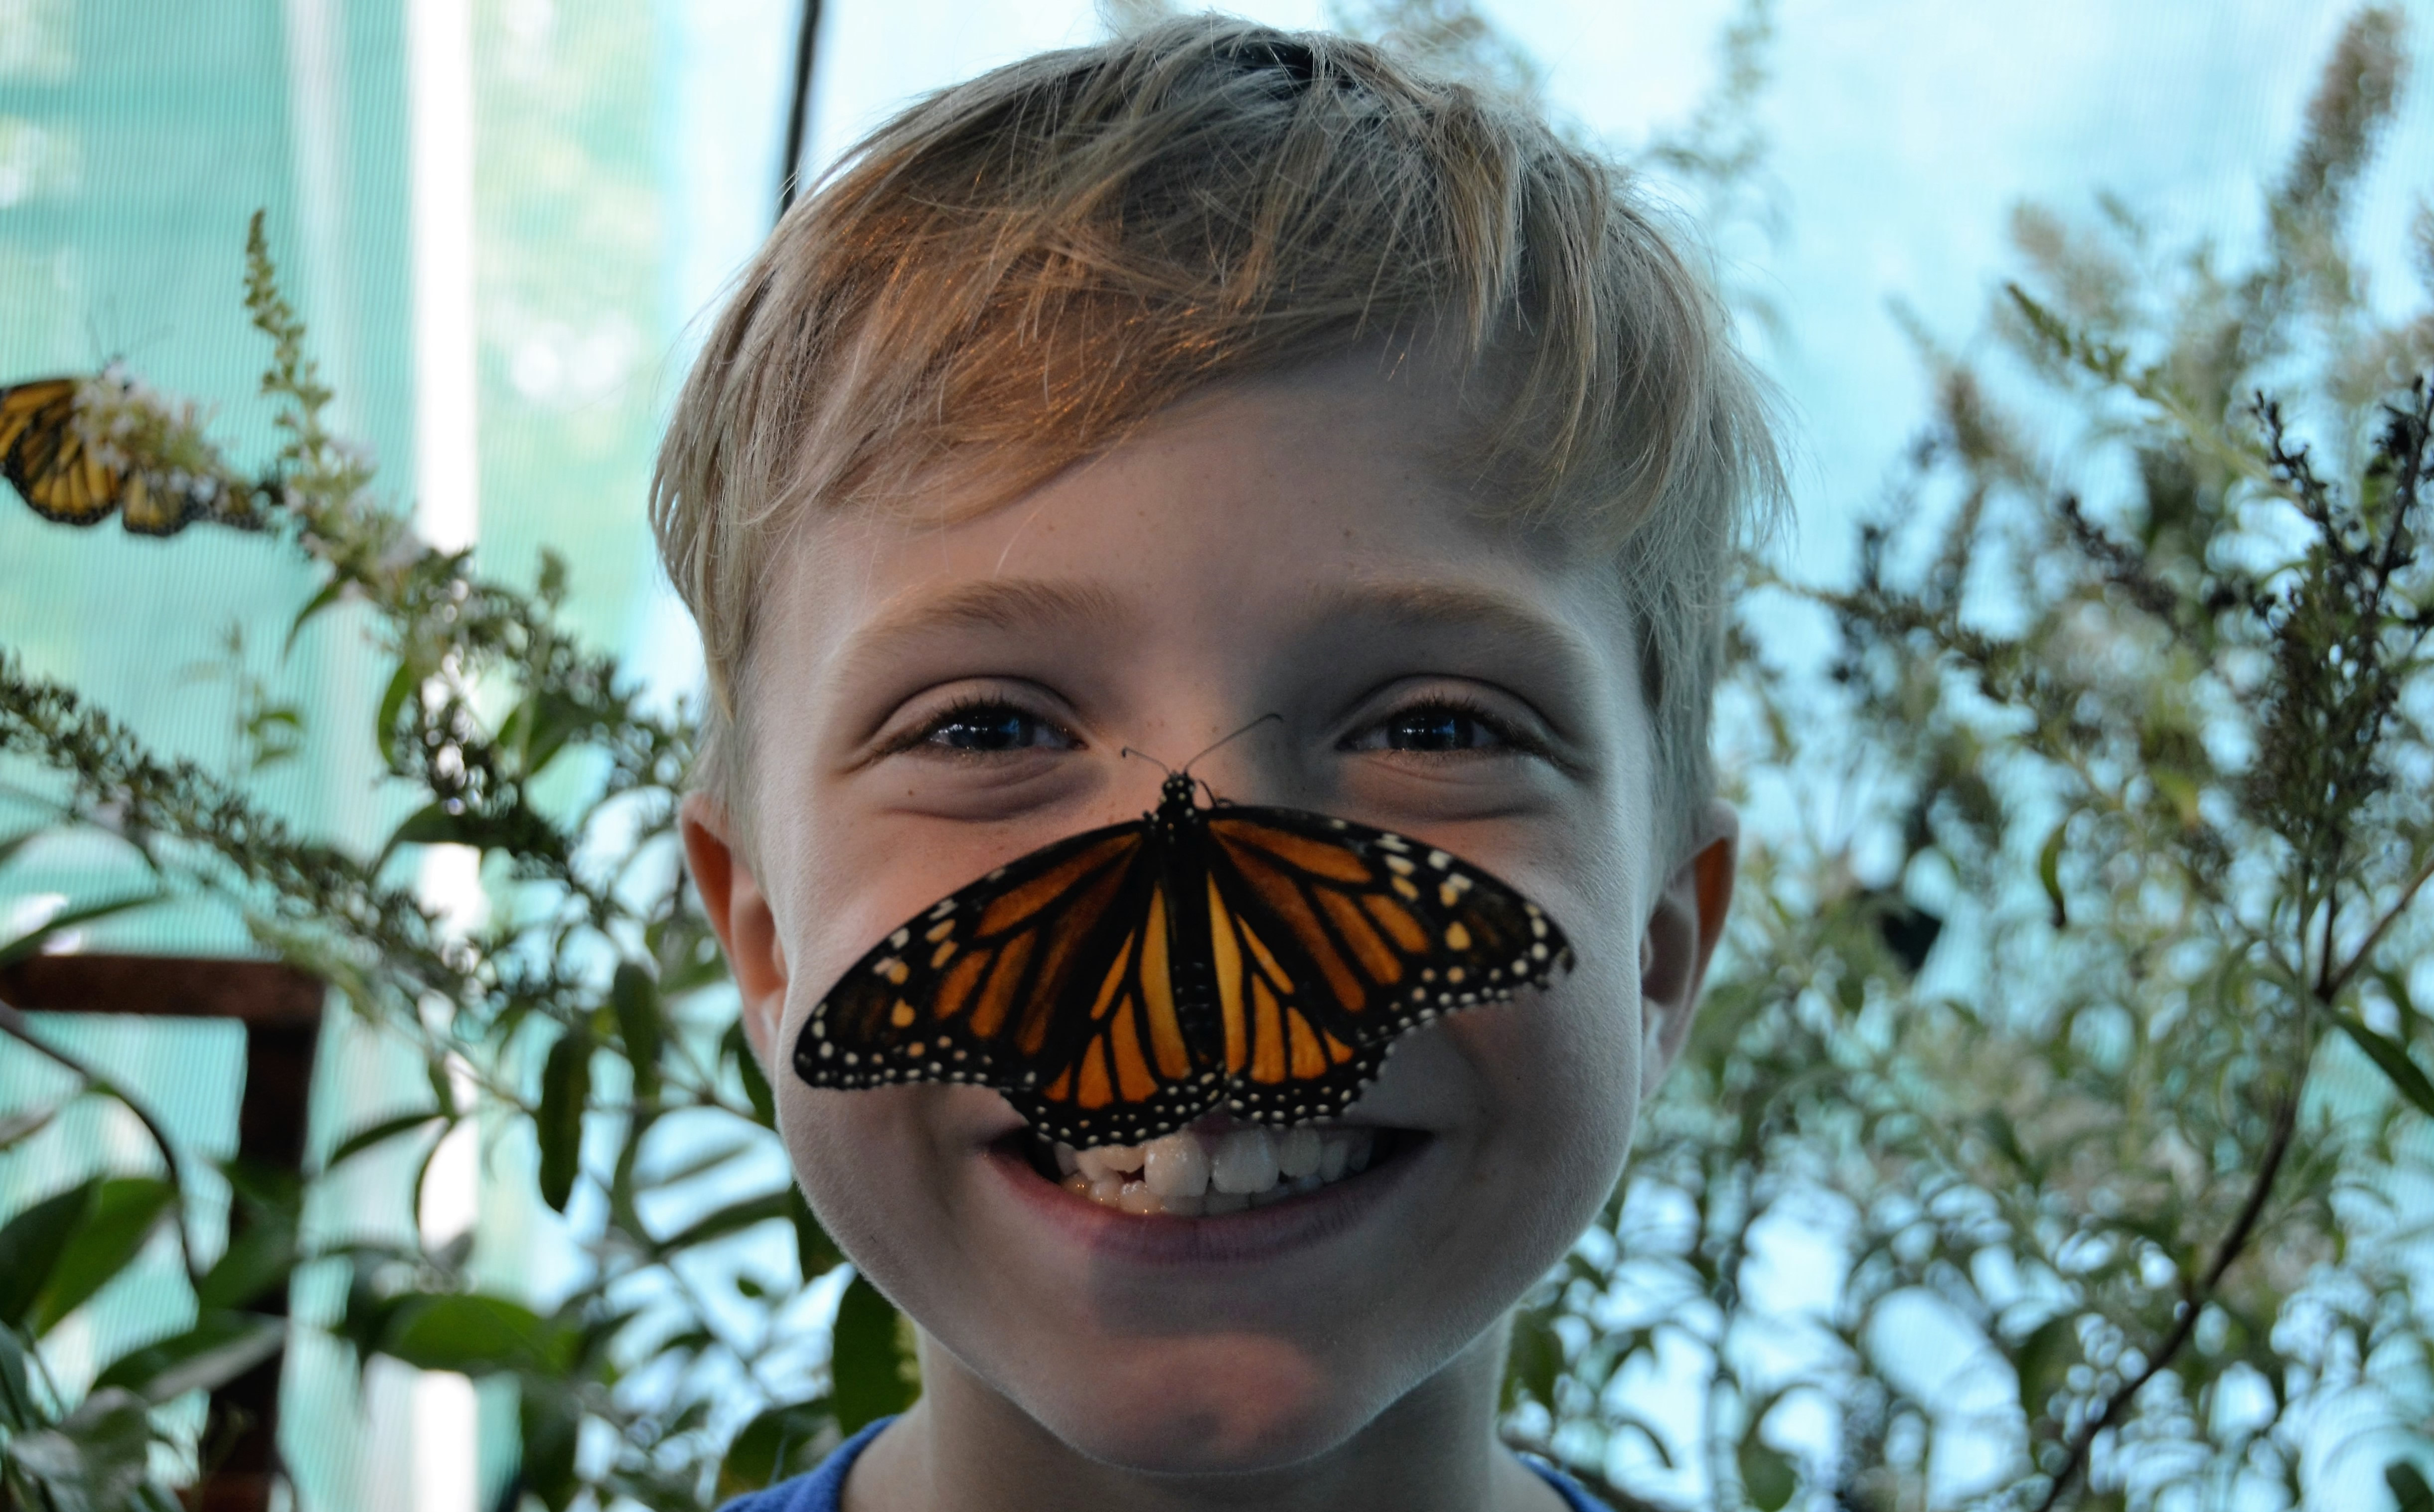 Plant a Butterfly Garden for Flutter and Fun